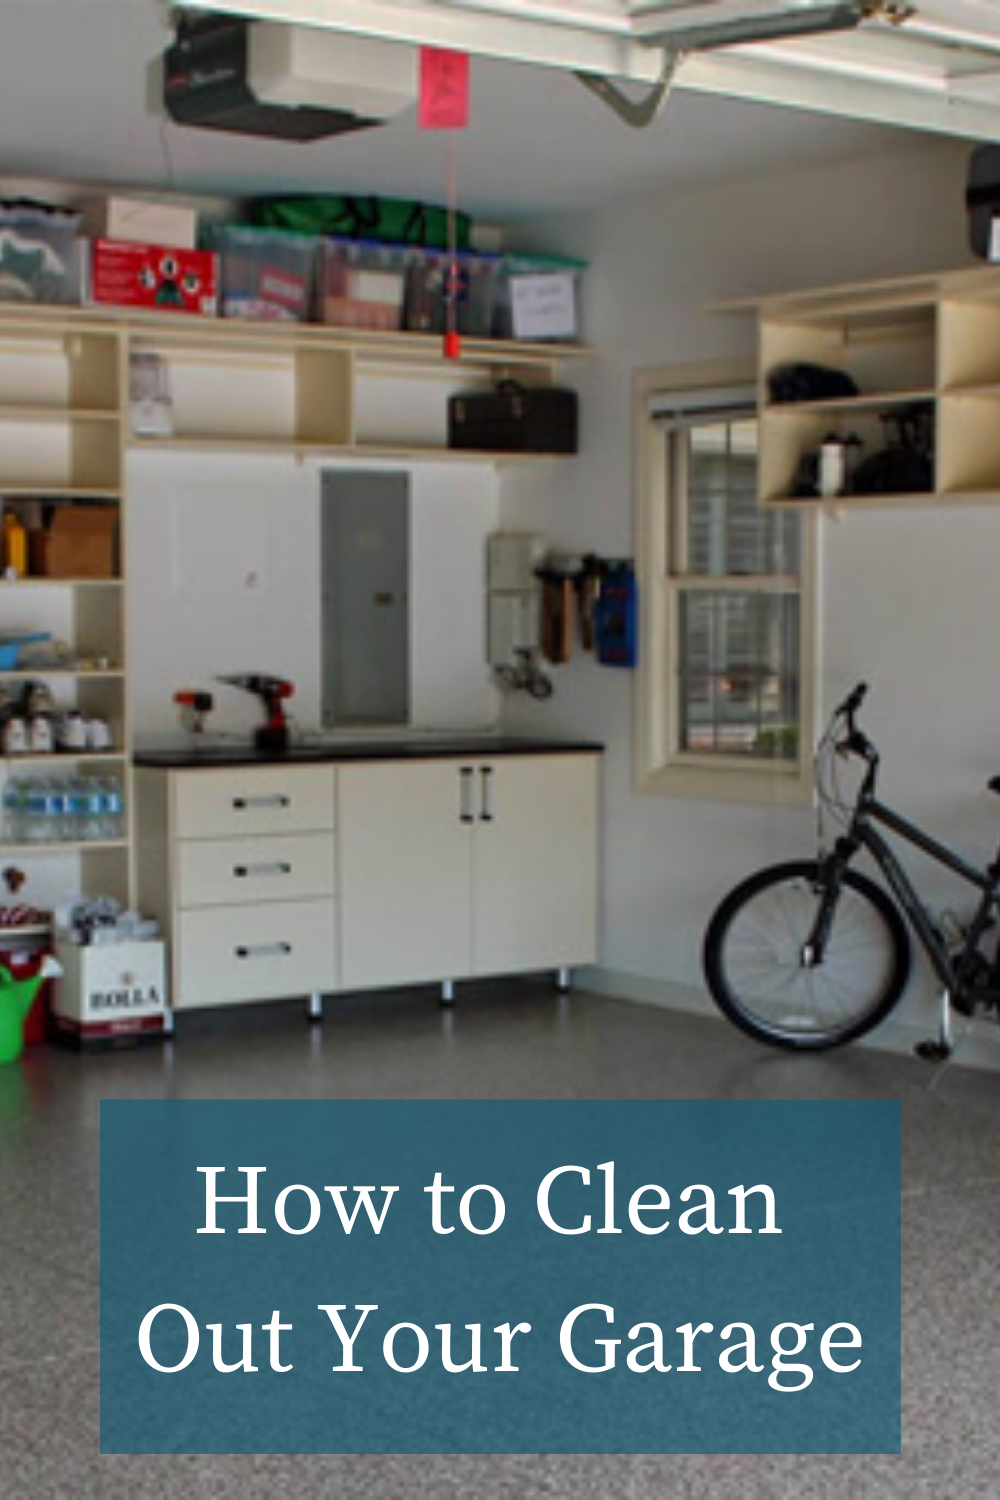 How To Clean Out Your Garage And Organize It Afterward In 2021 House Cleaning Tips Cleaning Organizing Garage Organize